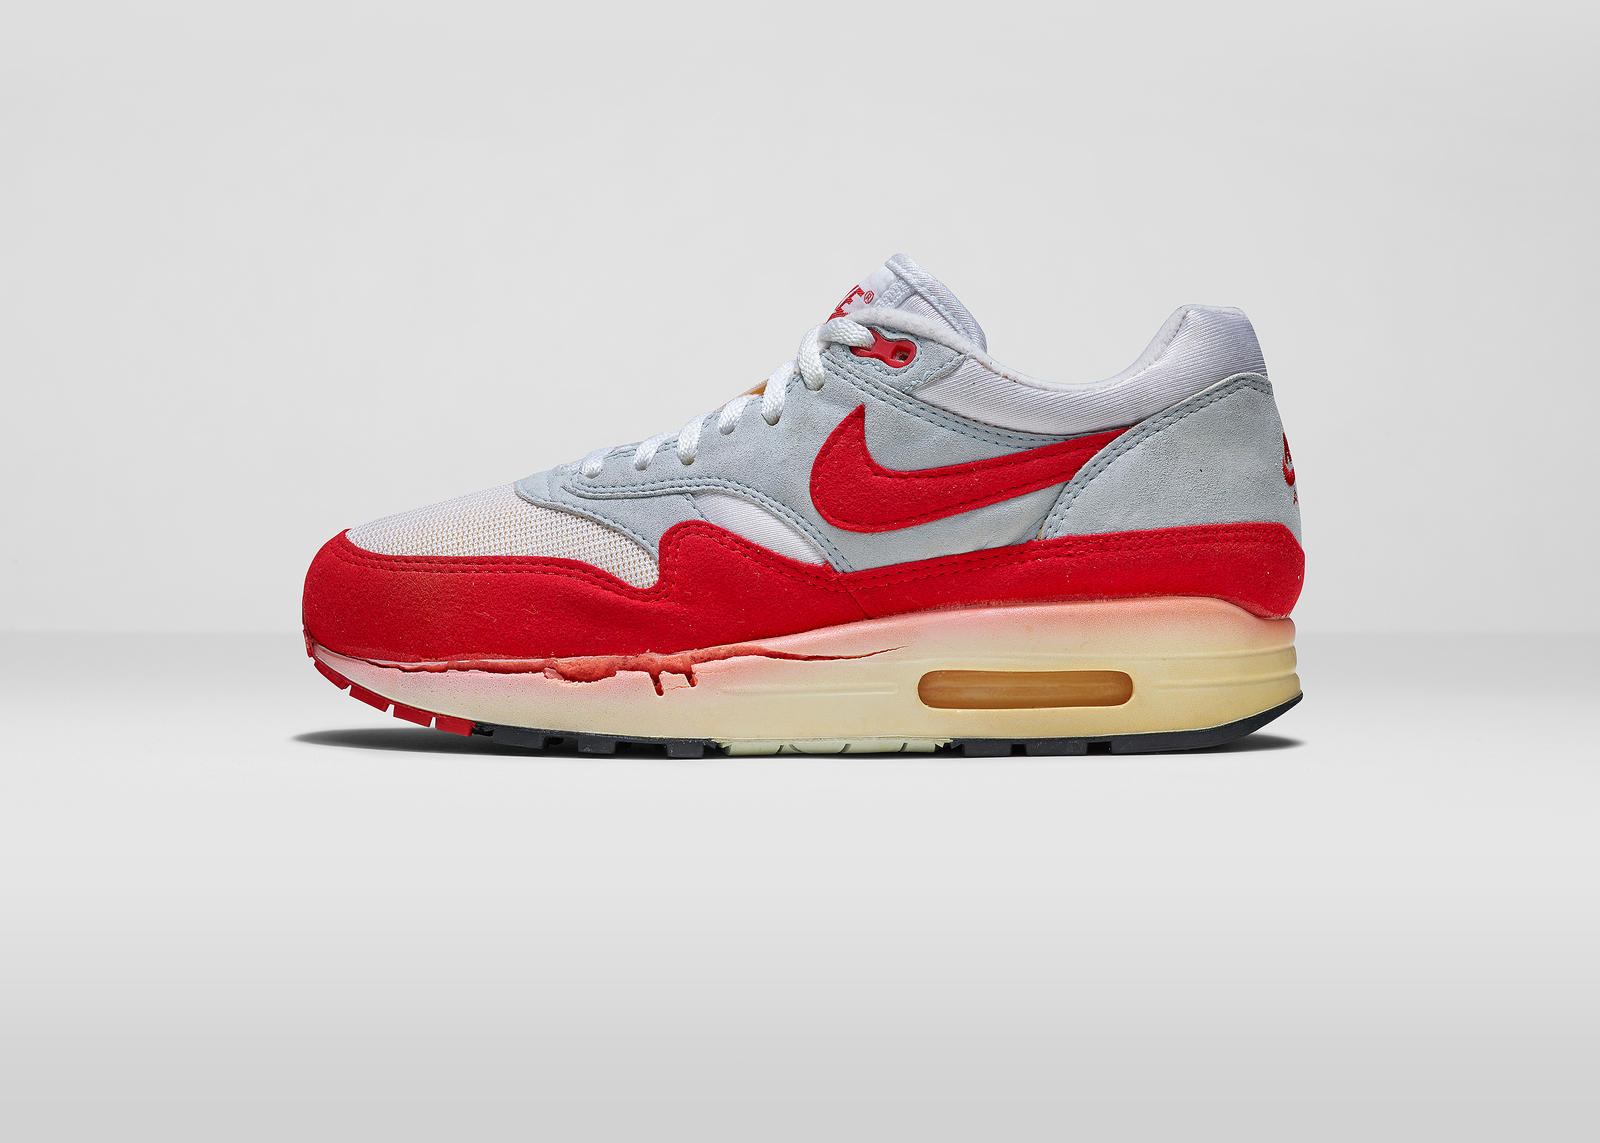 the latest dbeef c69b3 Air Max 1 (87). Nike AirMaxDay 2015 ONE LAT. Nike AirMaxDay 2015 ONE OUT